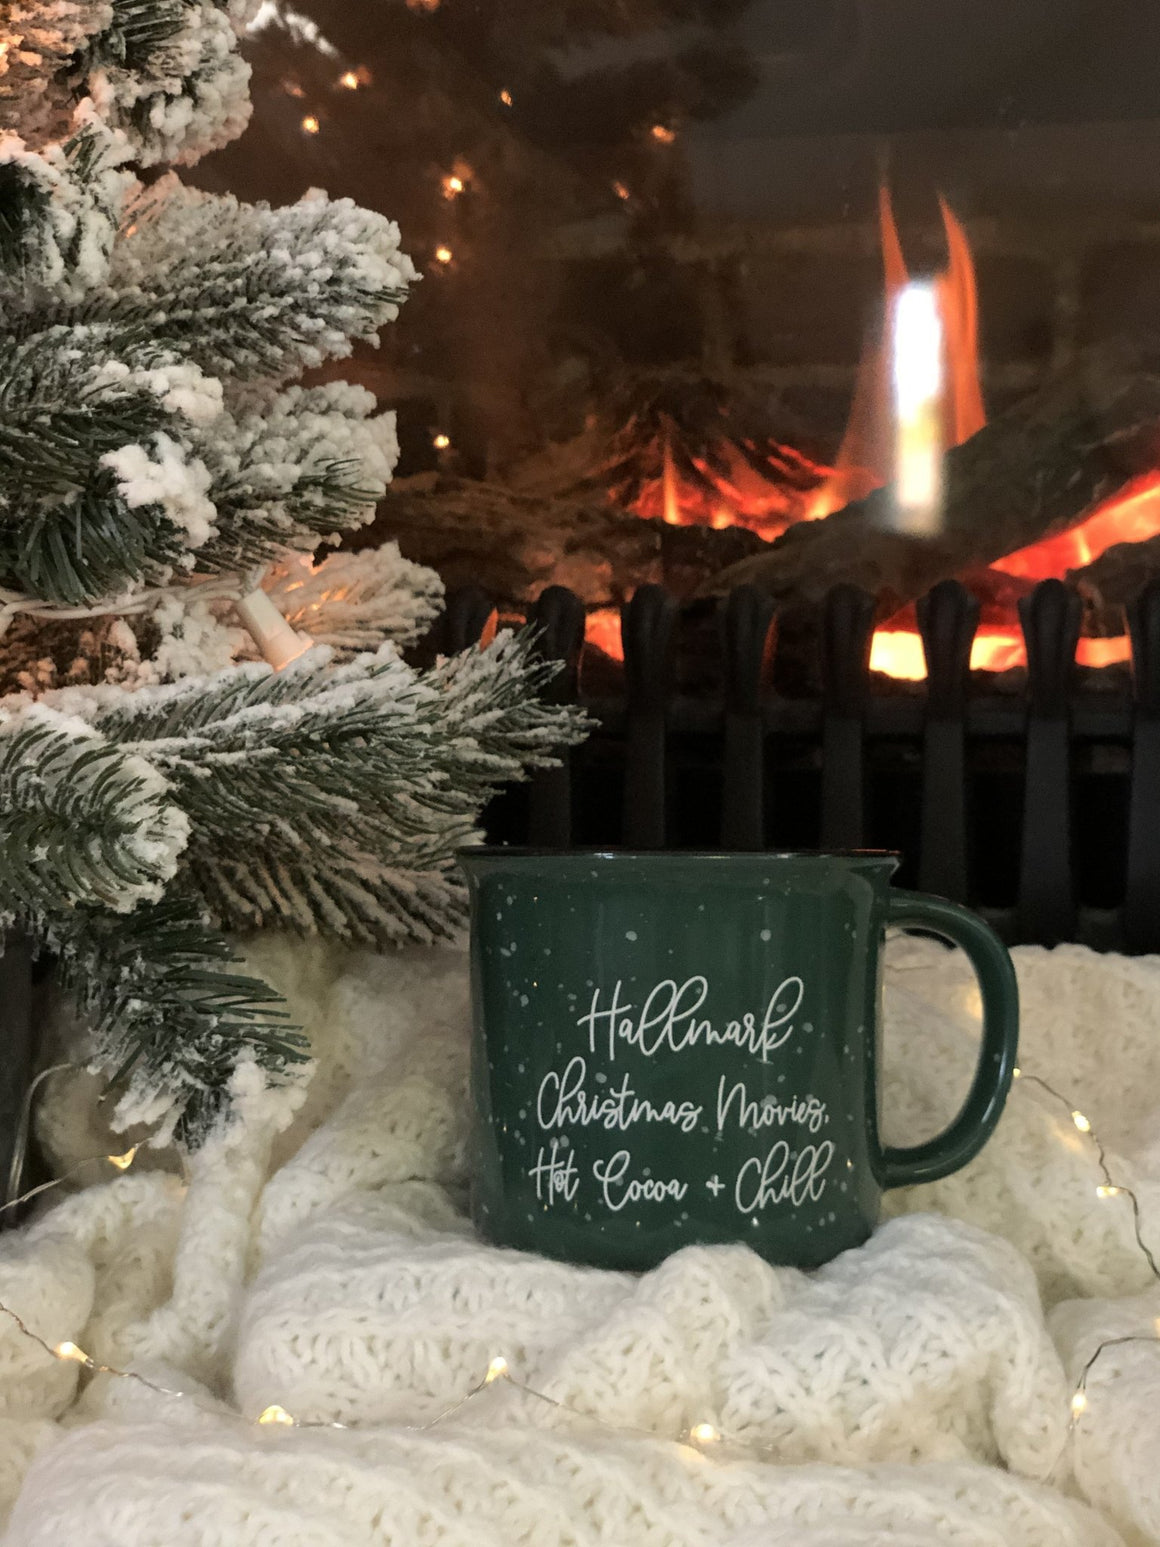 Hallmark Christmas Movies, Hot Cocoa, and Chill Campfire Mug - Pretty Collected